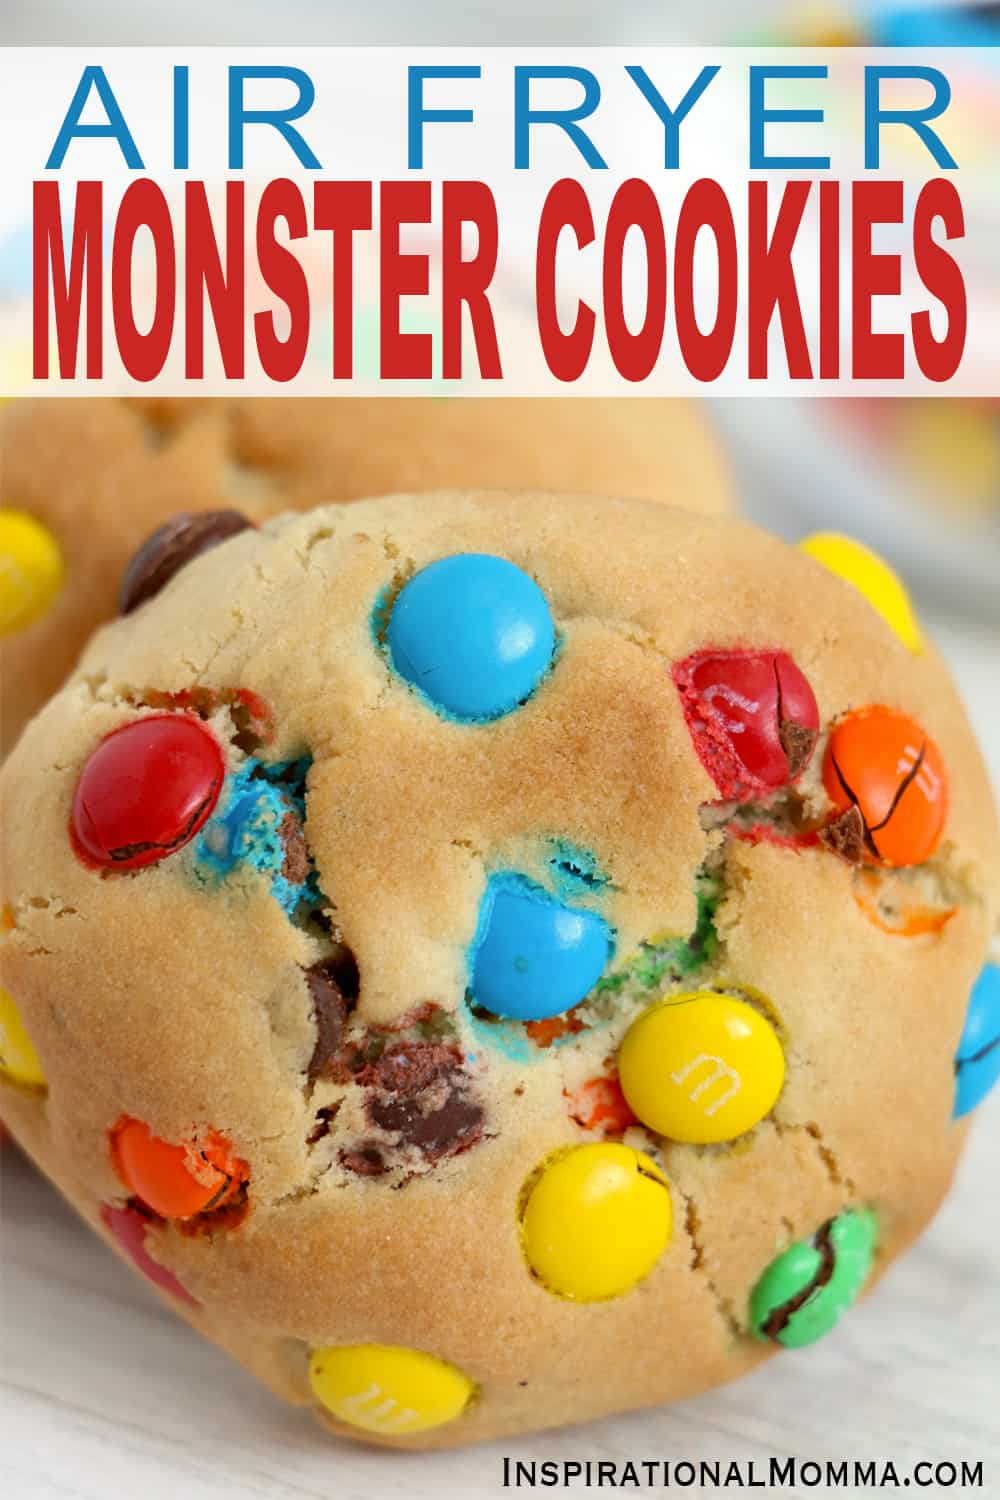 Air Fryer Monster Cookies are soft, chewy, and packed with sensational flavors.  Made in your air fryer, they are an easy, sweet treat! #inspirationalmomma #airfryermonstercookies #airfryerdesserts #monstercookies #cookierecipes